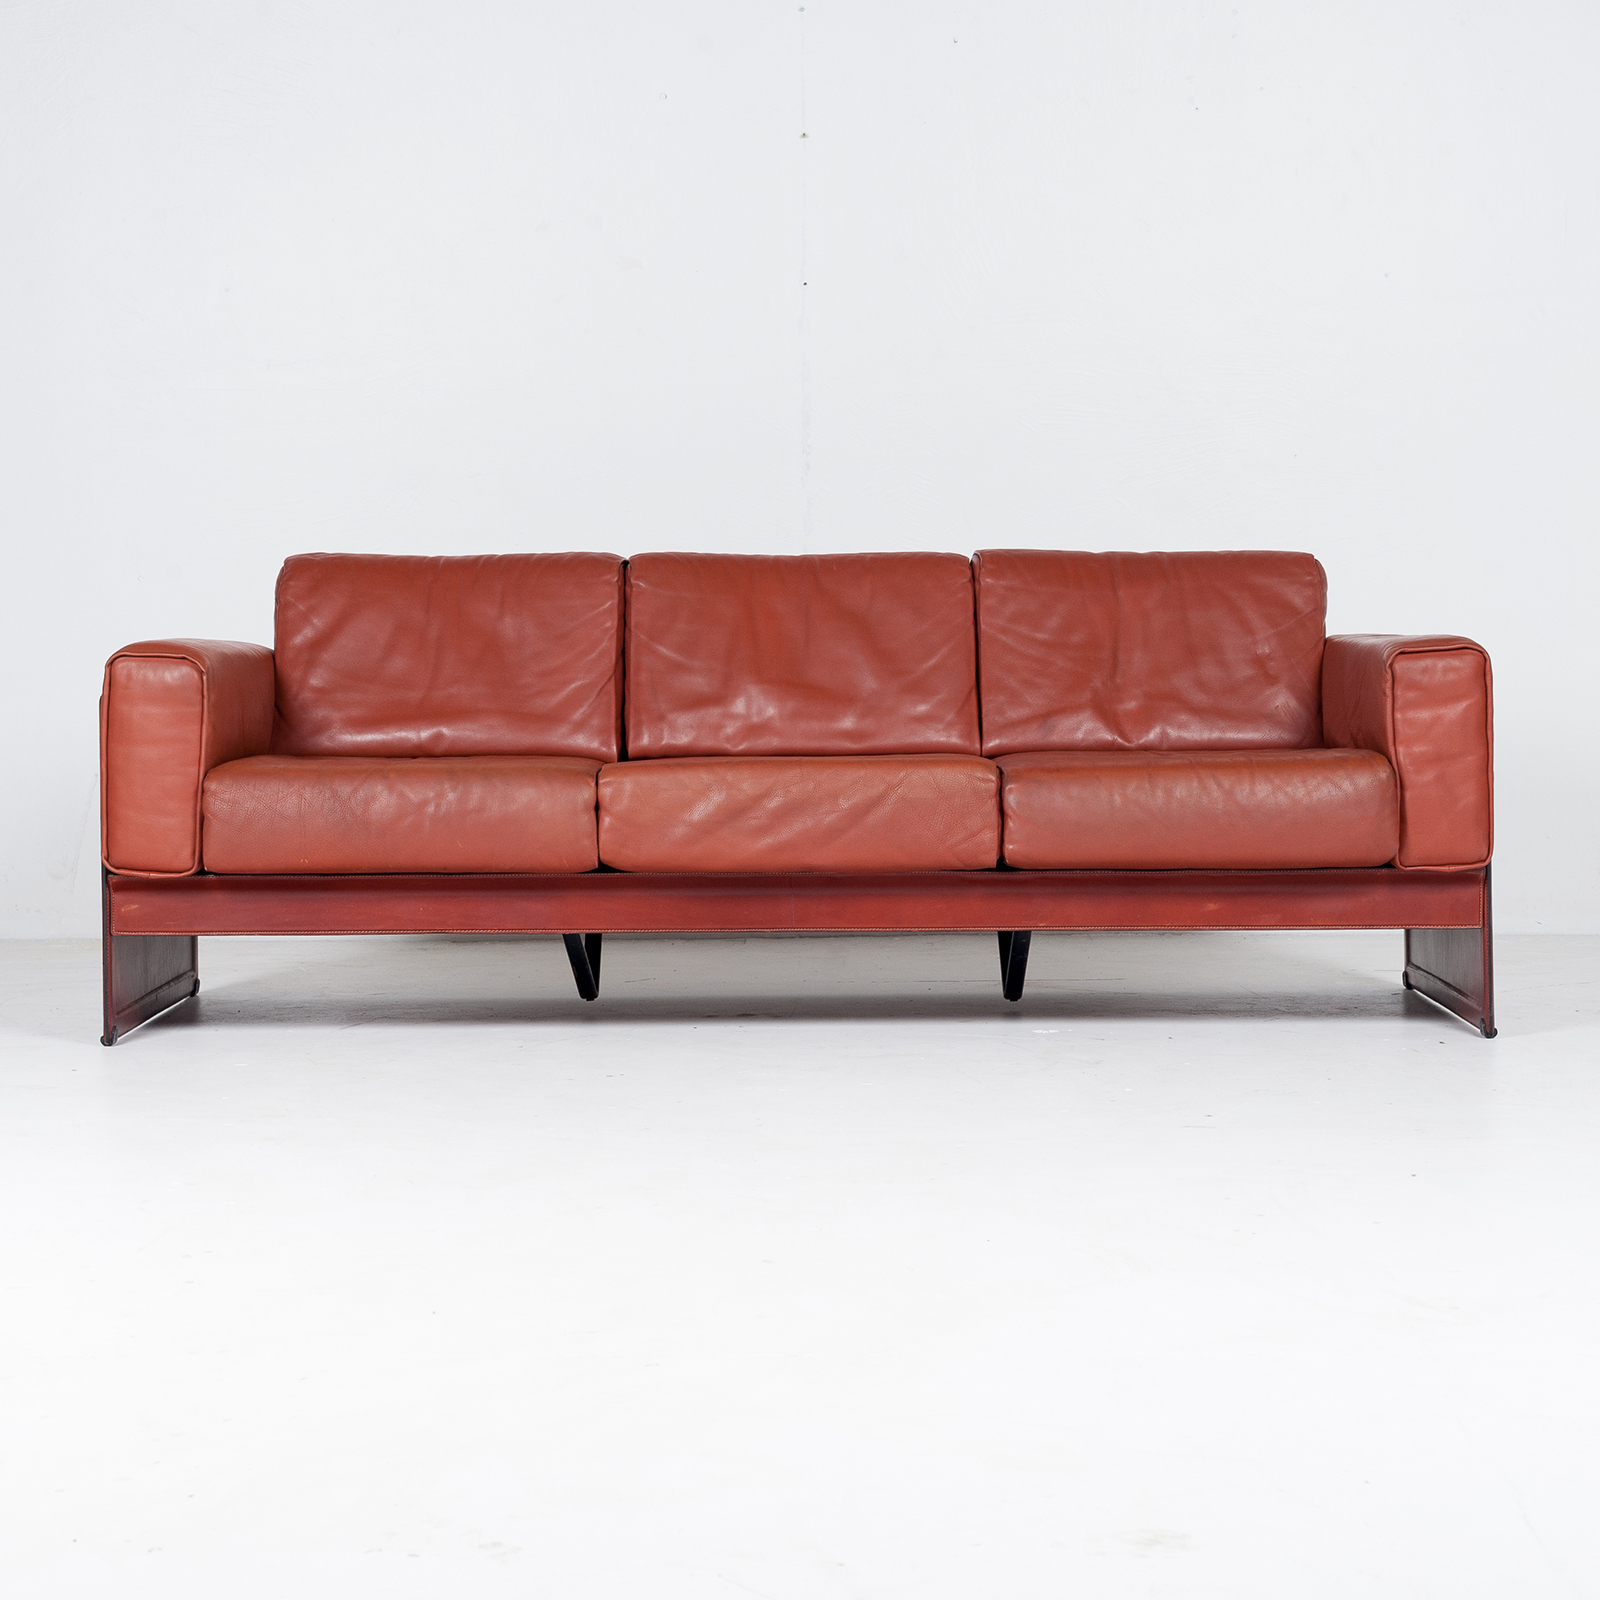 3 Seat Sofa In Leather By Matteo Grassi, 1980s, Italy46